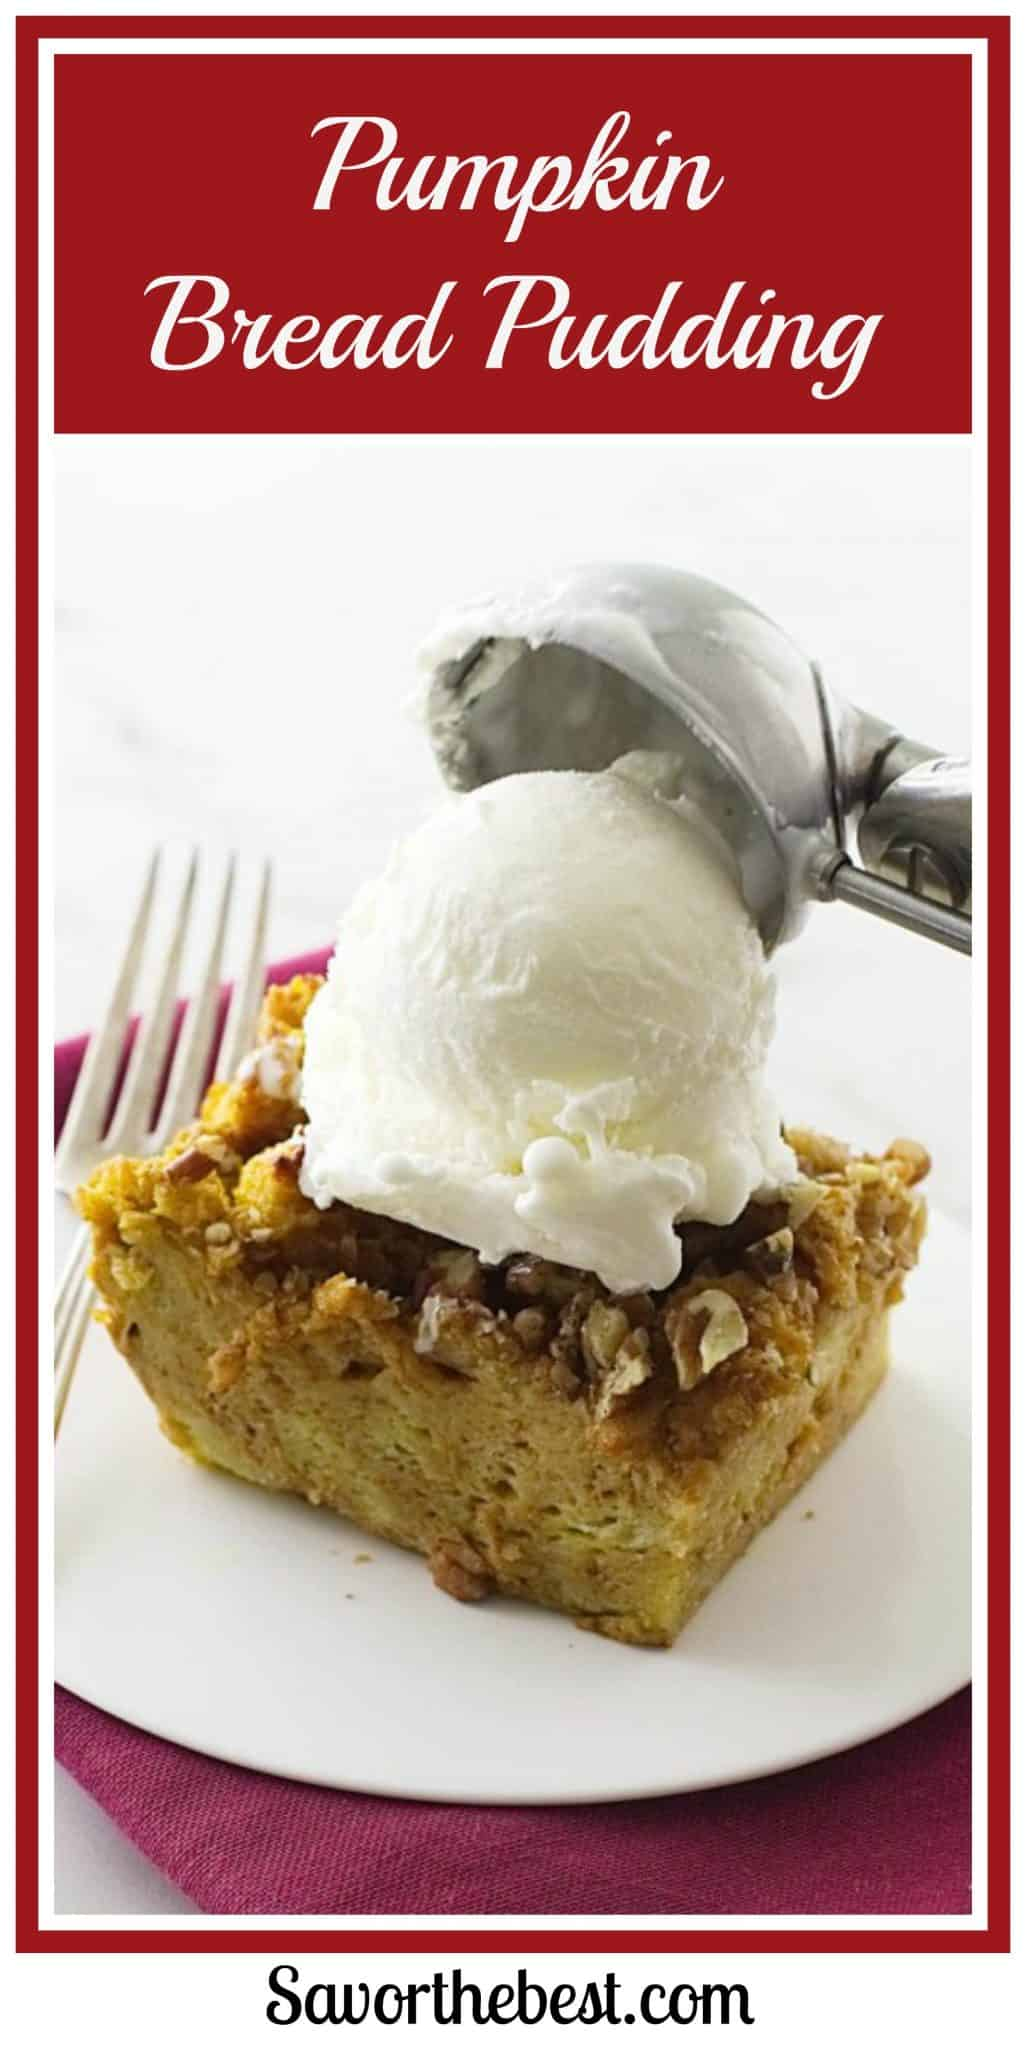 Easy Pumpkin bread pudding recipe with a pumpkin custard filling. Makes an amazing holiday dessert for Thanksgiving